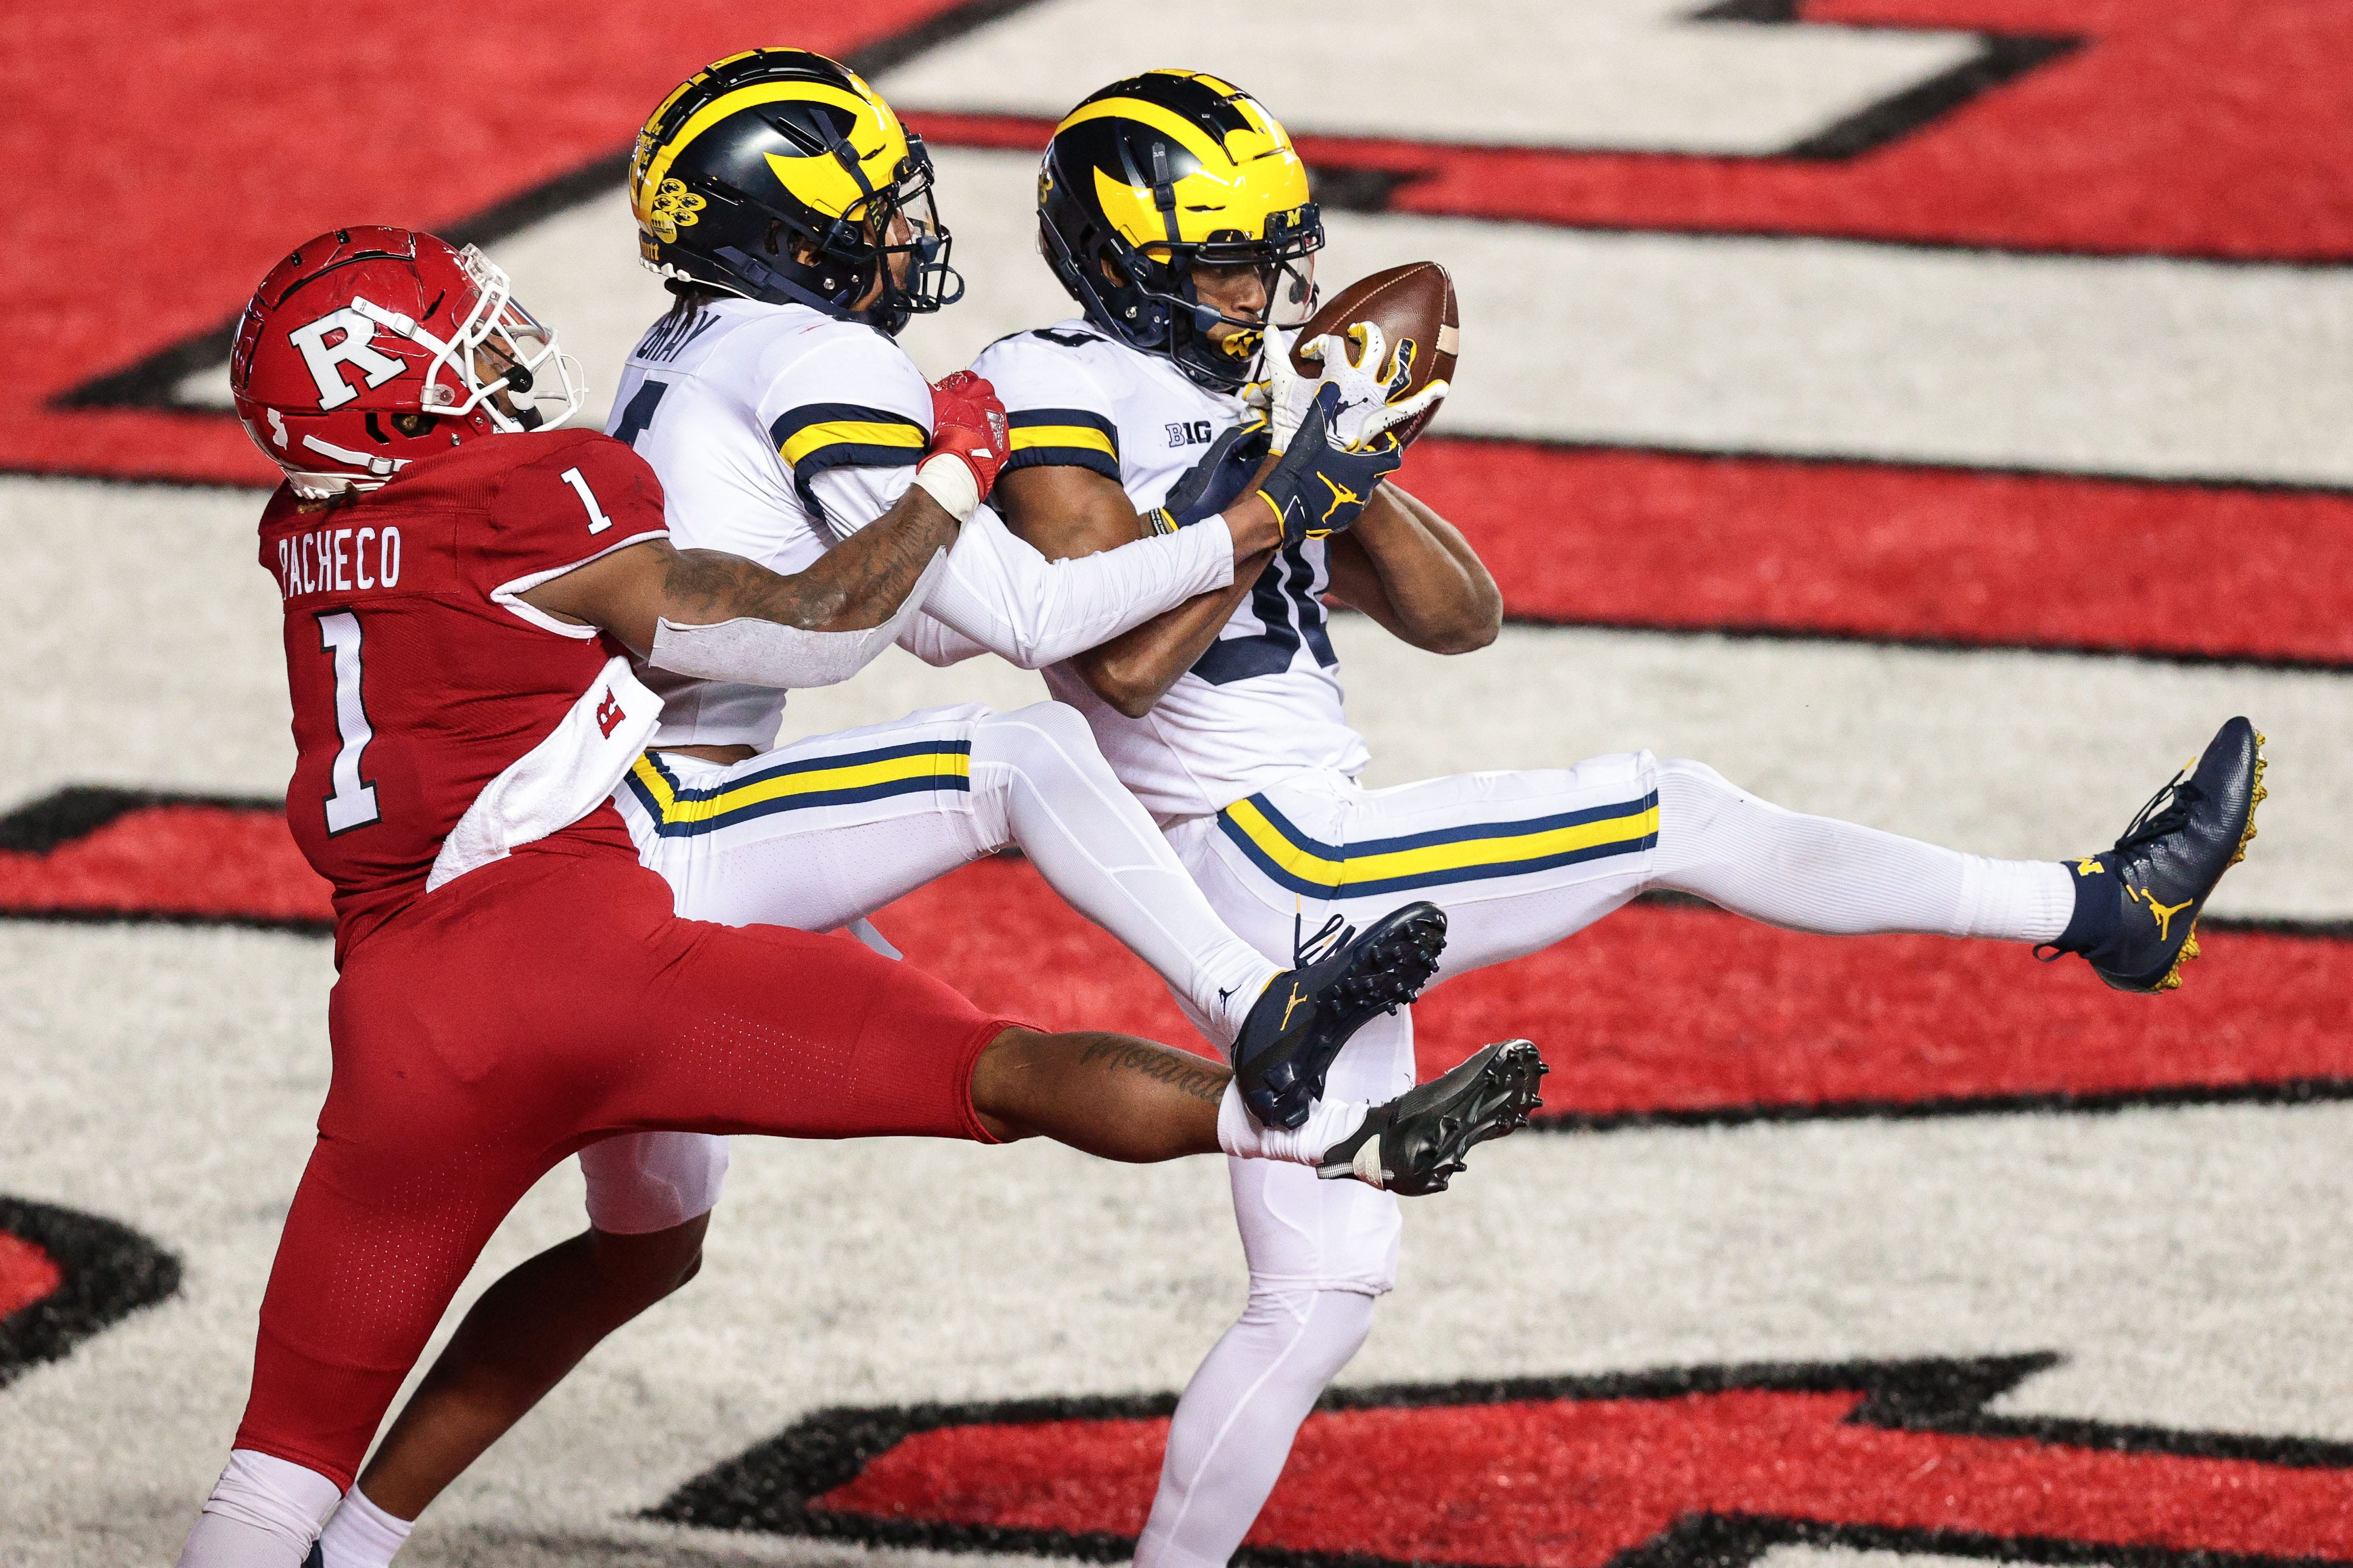 Michigan comes back from 17 down, clips Rutgers in triple overtime to end losing streak